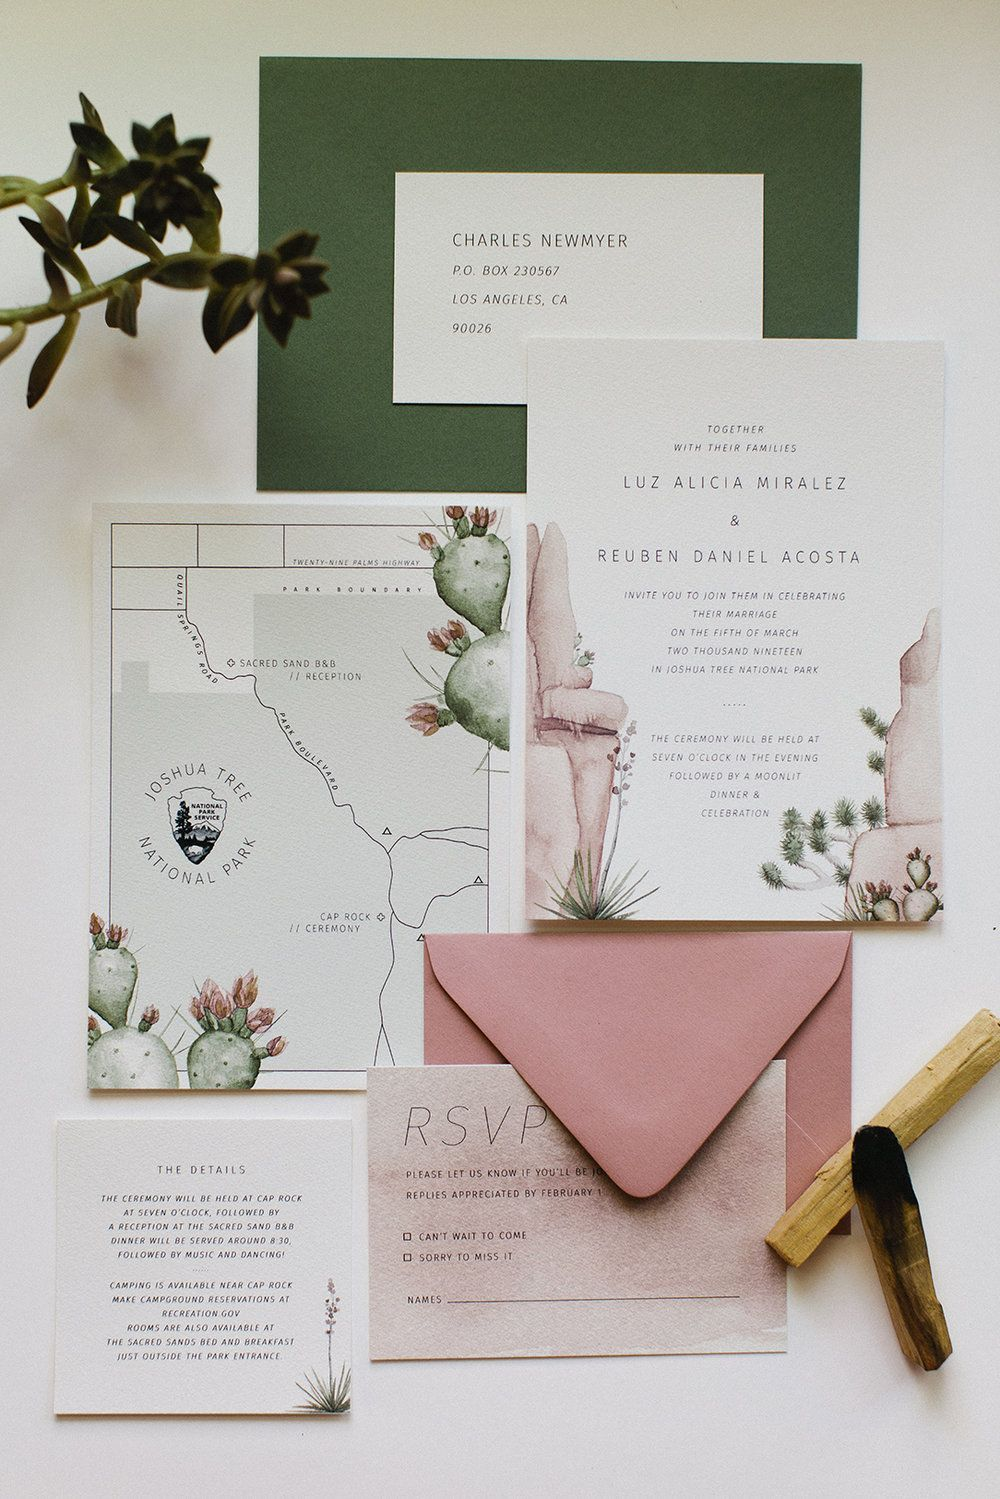 Invitations Reception Map Wedding Card Watercolor Wedding Invitation Weddinginvitation Wedding Invitations Boho Wedding Invitation Cards Wedding Map